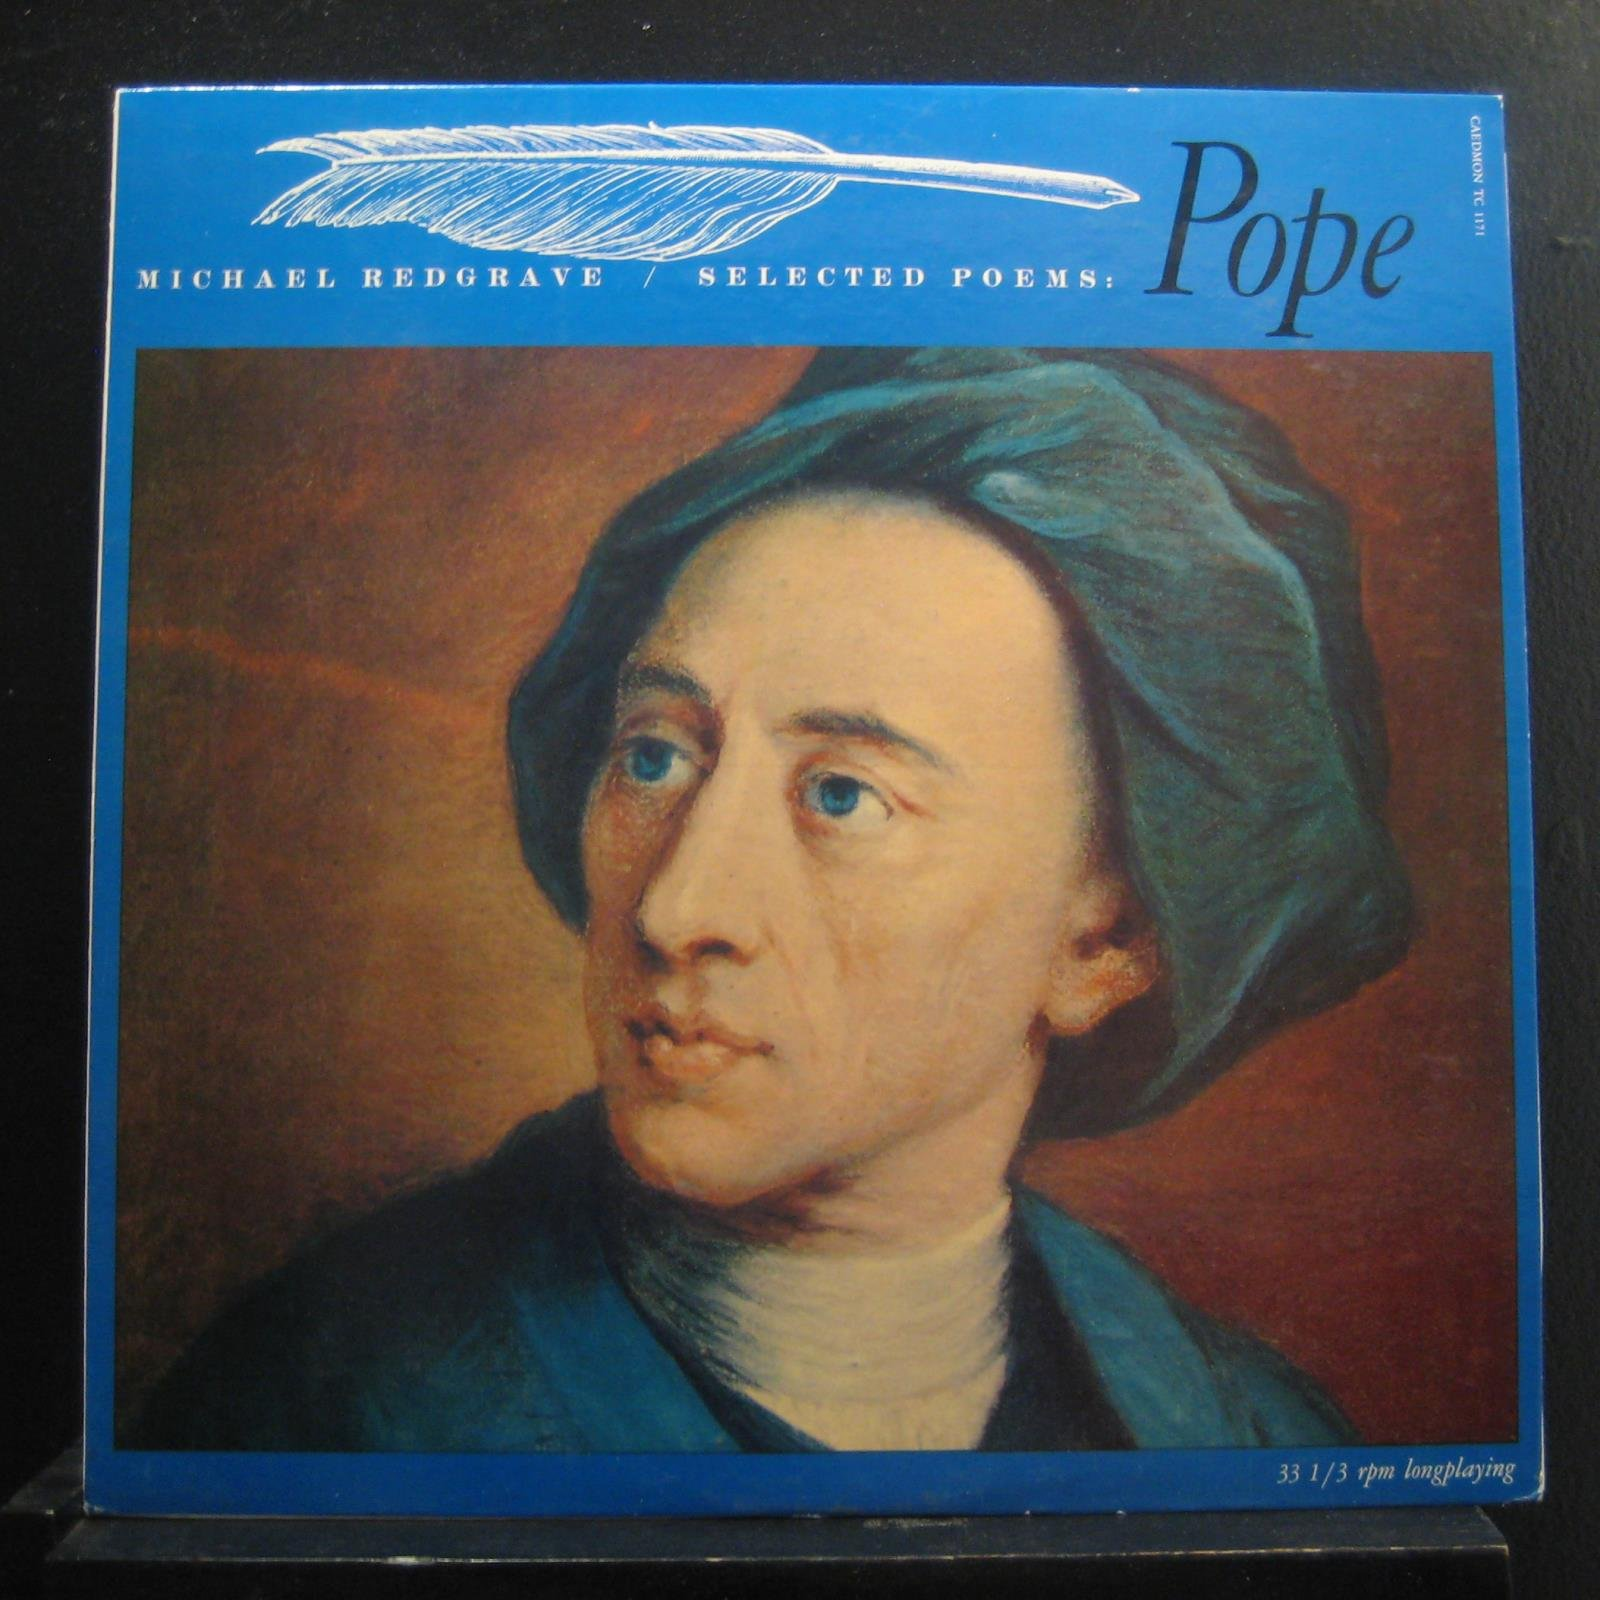 The Poetry of Alexander Pope - read by Sir Michael Redgrave - vintage vinyl record with Original Booklet